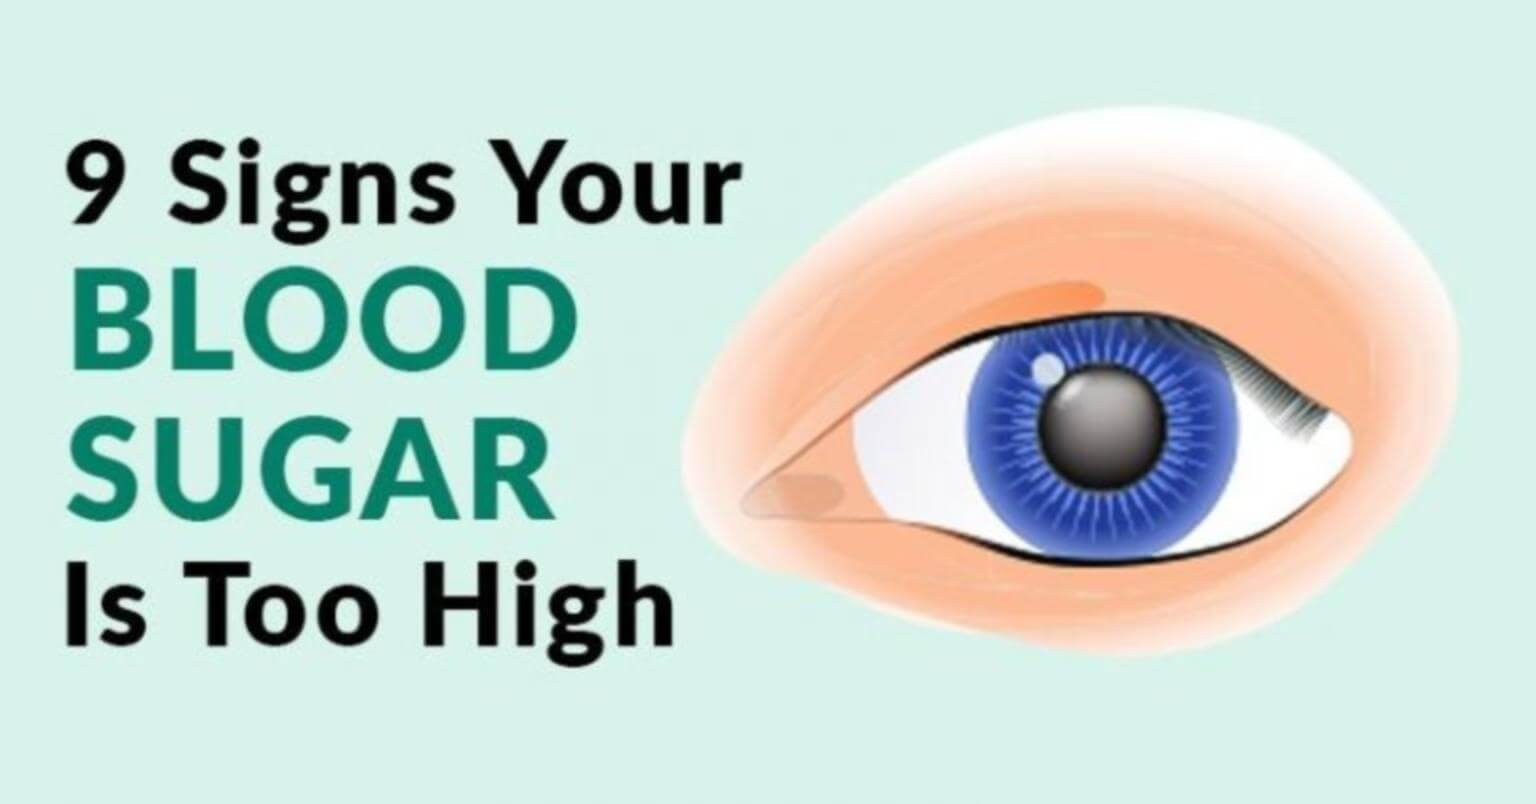 Signs of High Blood Sugar